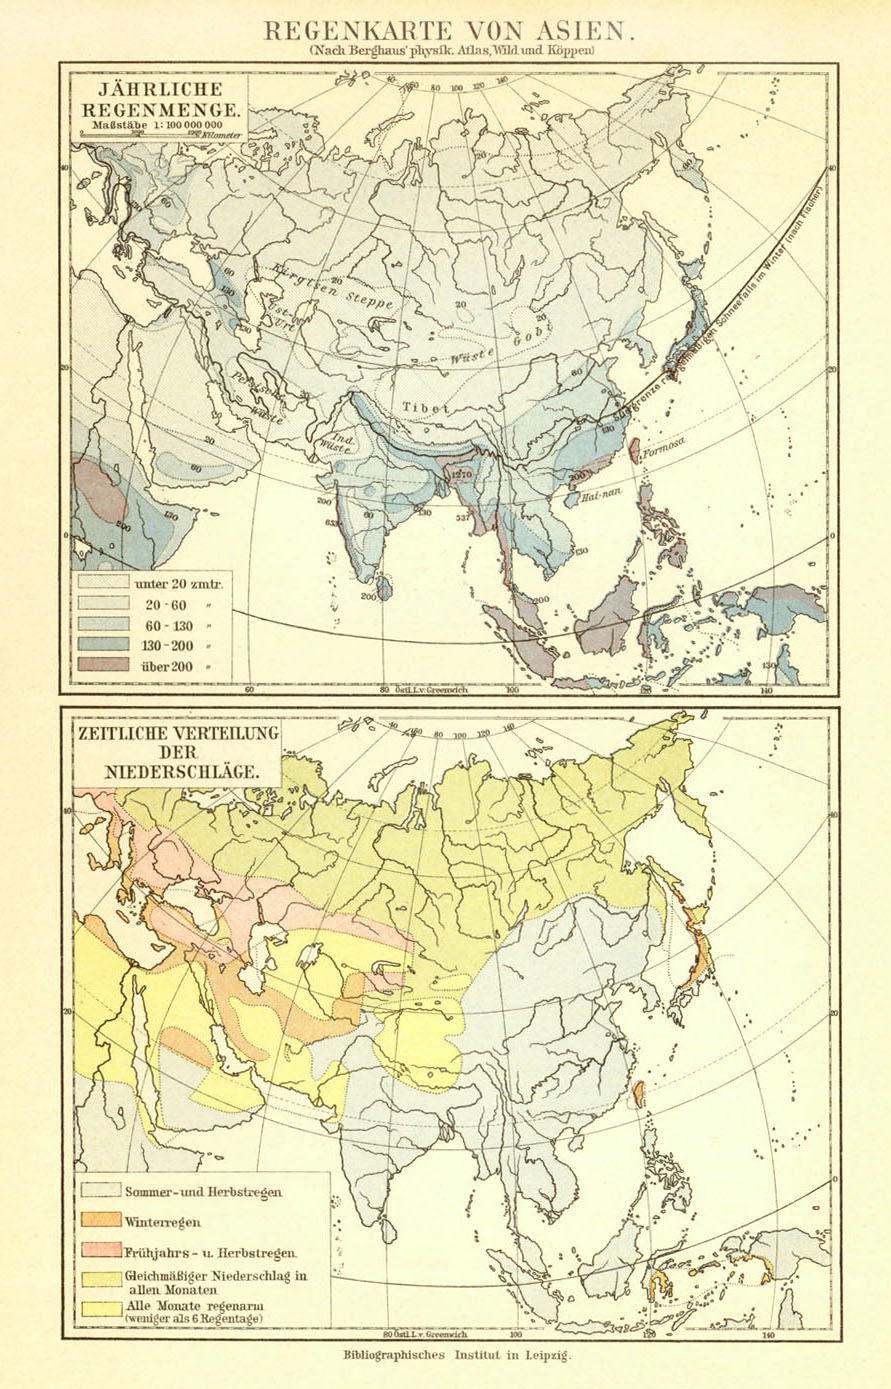 """Regenkarte von Asien"" (rainfall map of Asia)  Maps show rainfall in various regions of Asia.  Published 1890."